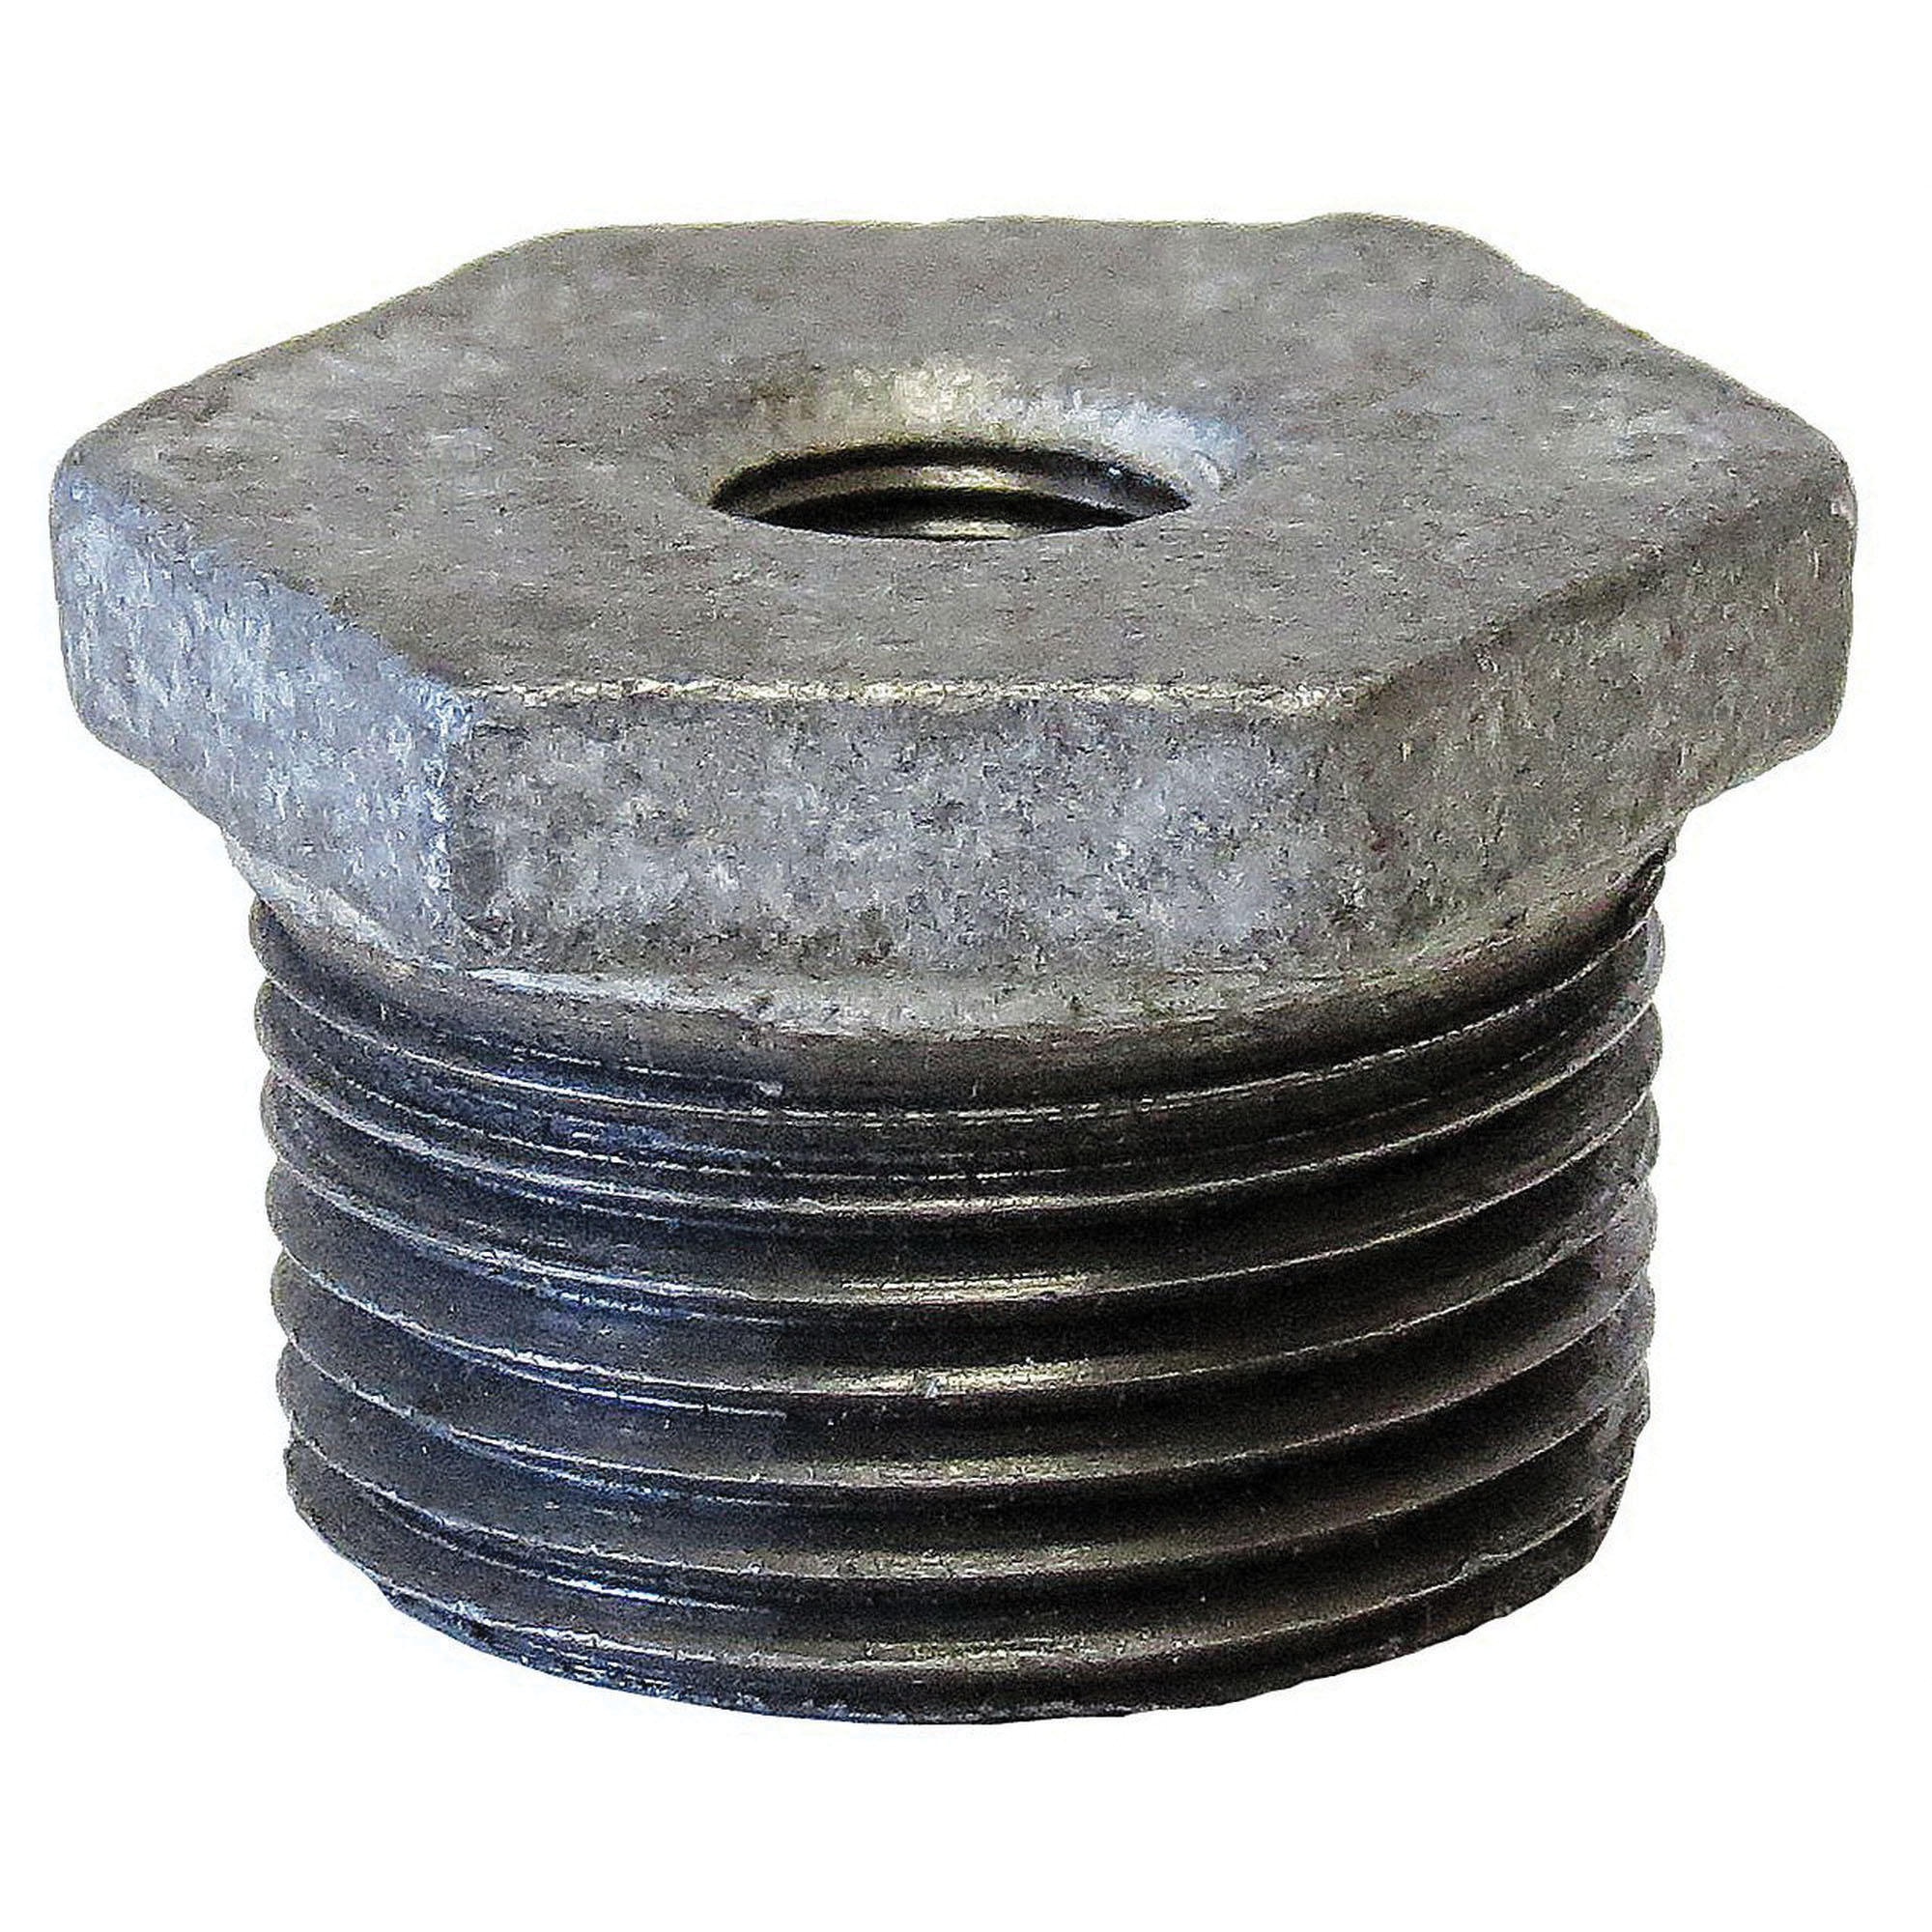 Merchant Steel Class 300 SCH 80 Hex Bushing, 3/4 in x 1/2 in, MNPT x FNPT, Domestic, 100/CT